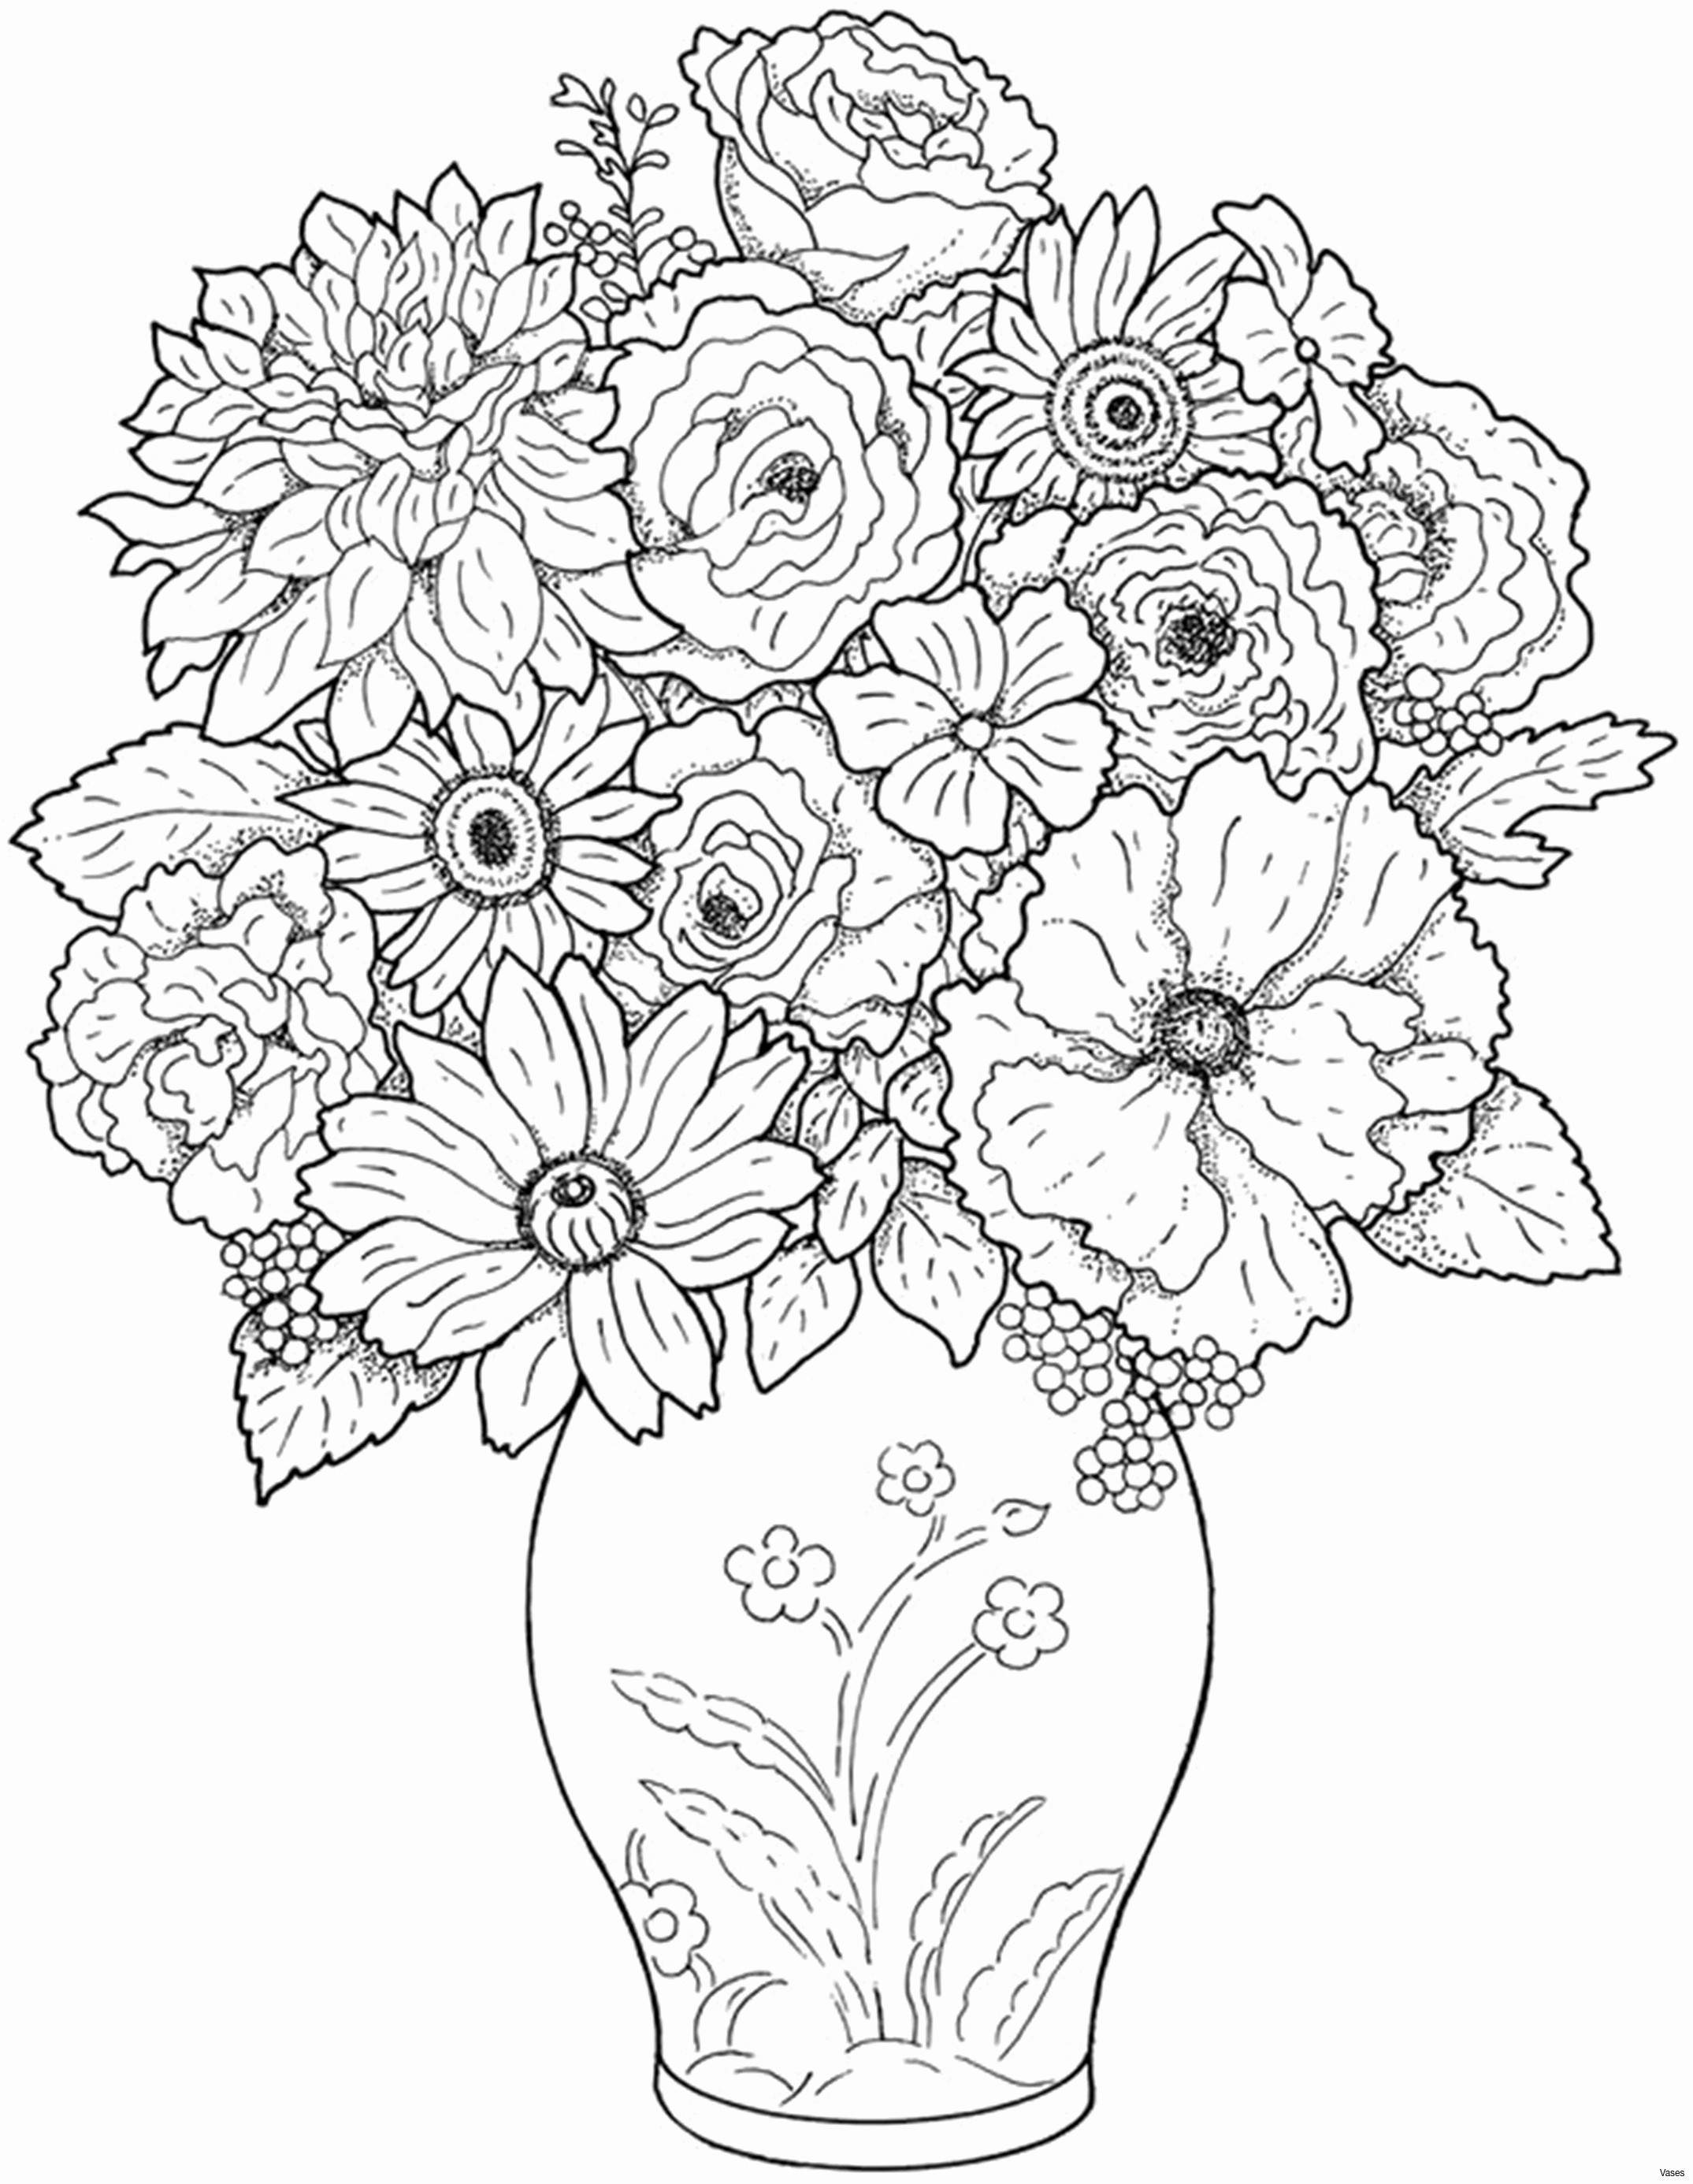 shoe flower vase of kids flower coloring pages to print throughout best of art coloring picture for kids new cool vases flower vase coloring